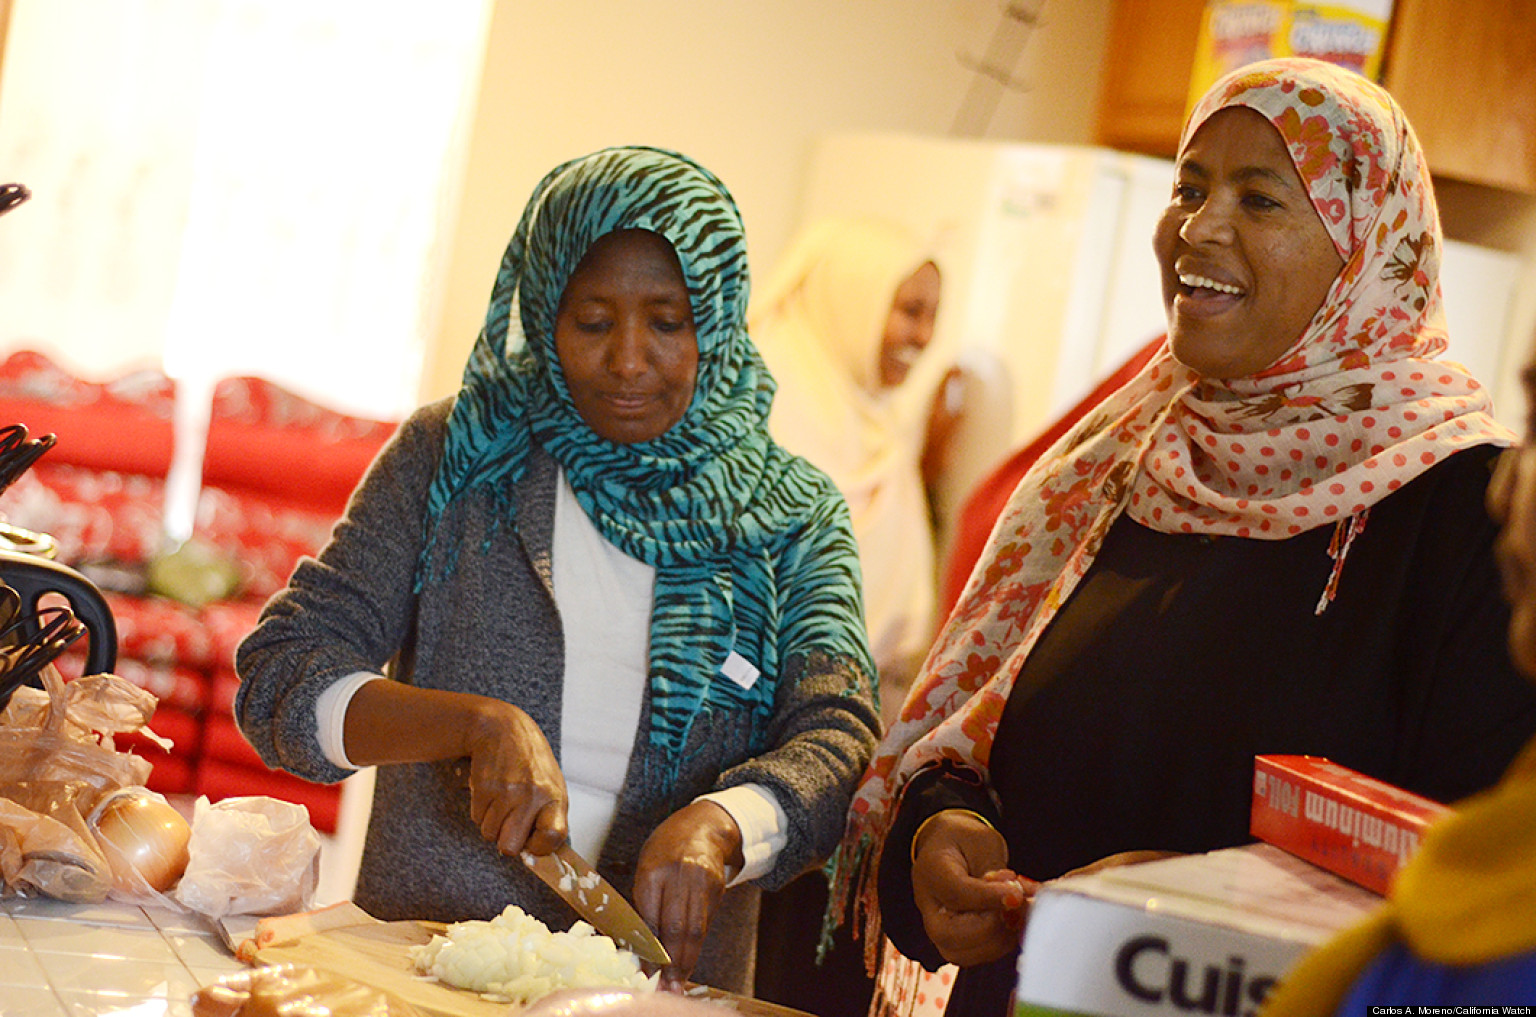 Somali cooking for east african women moving from cheetos to somali cooking for east african women moving from cheetos to mushmush huffpost forumfinder Image collections